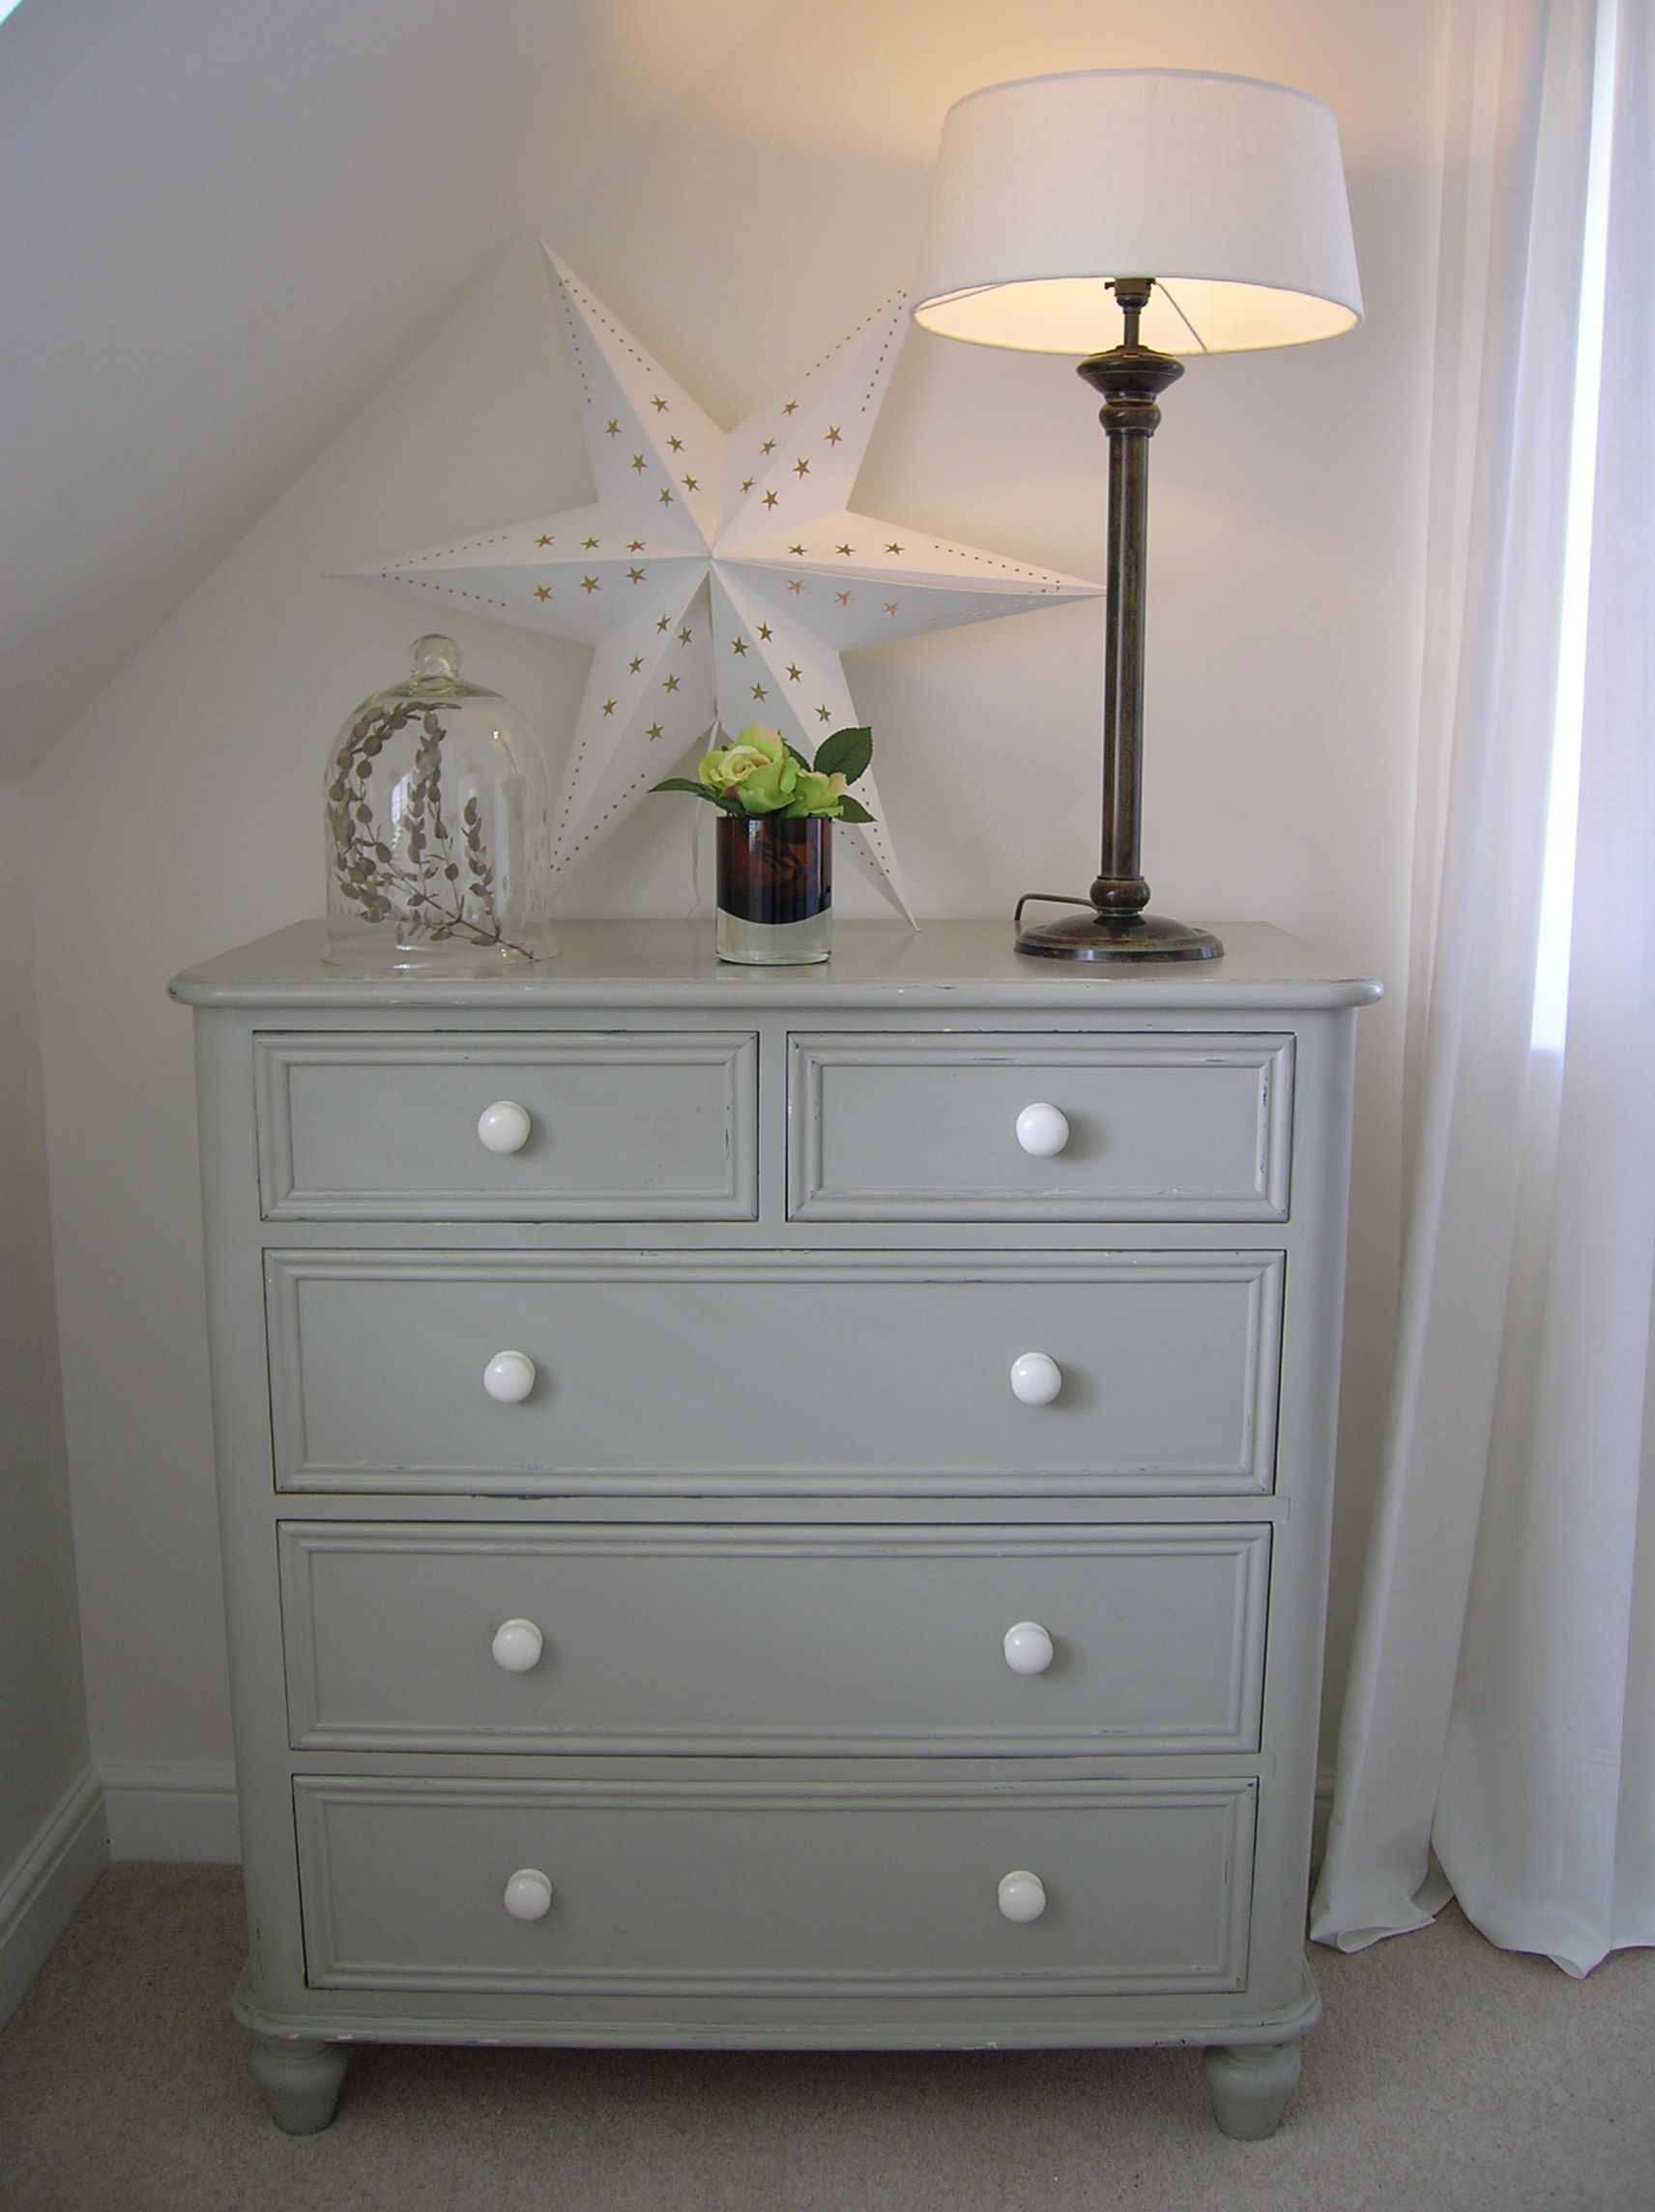 Pin By Melanie Hewitt On Sarah Crozier Interiors Pine Bedroom Furniture Furniture Makeover Furniture